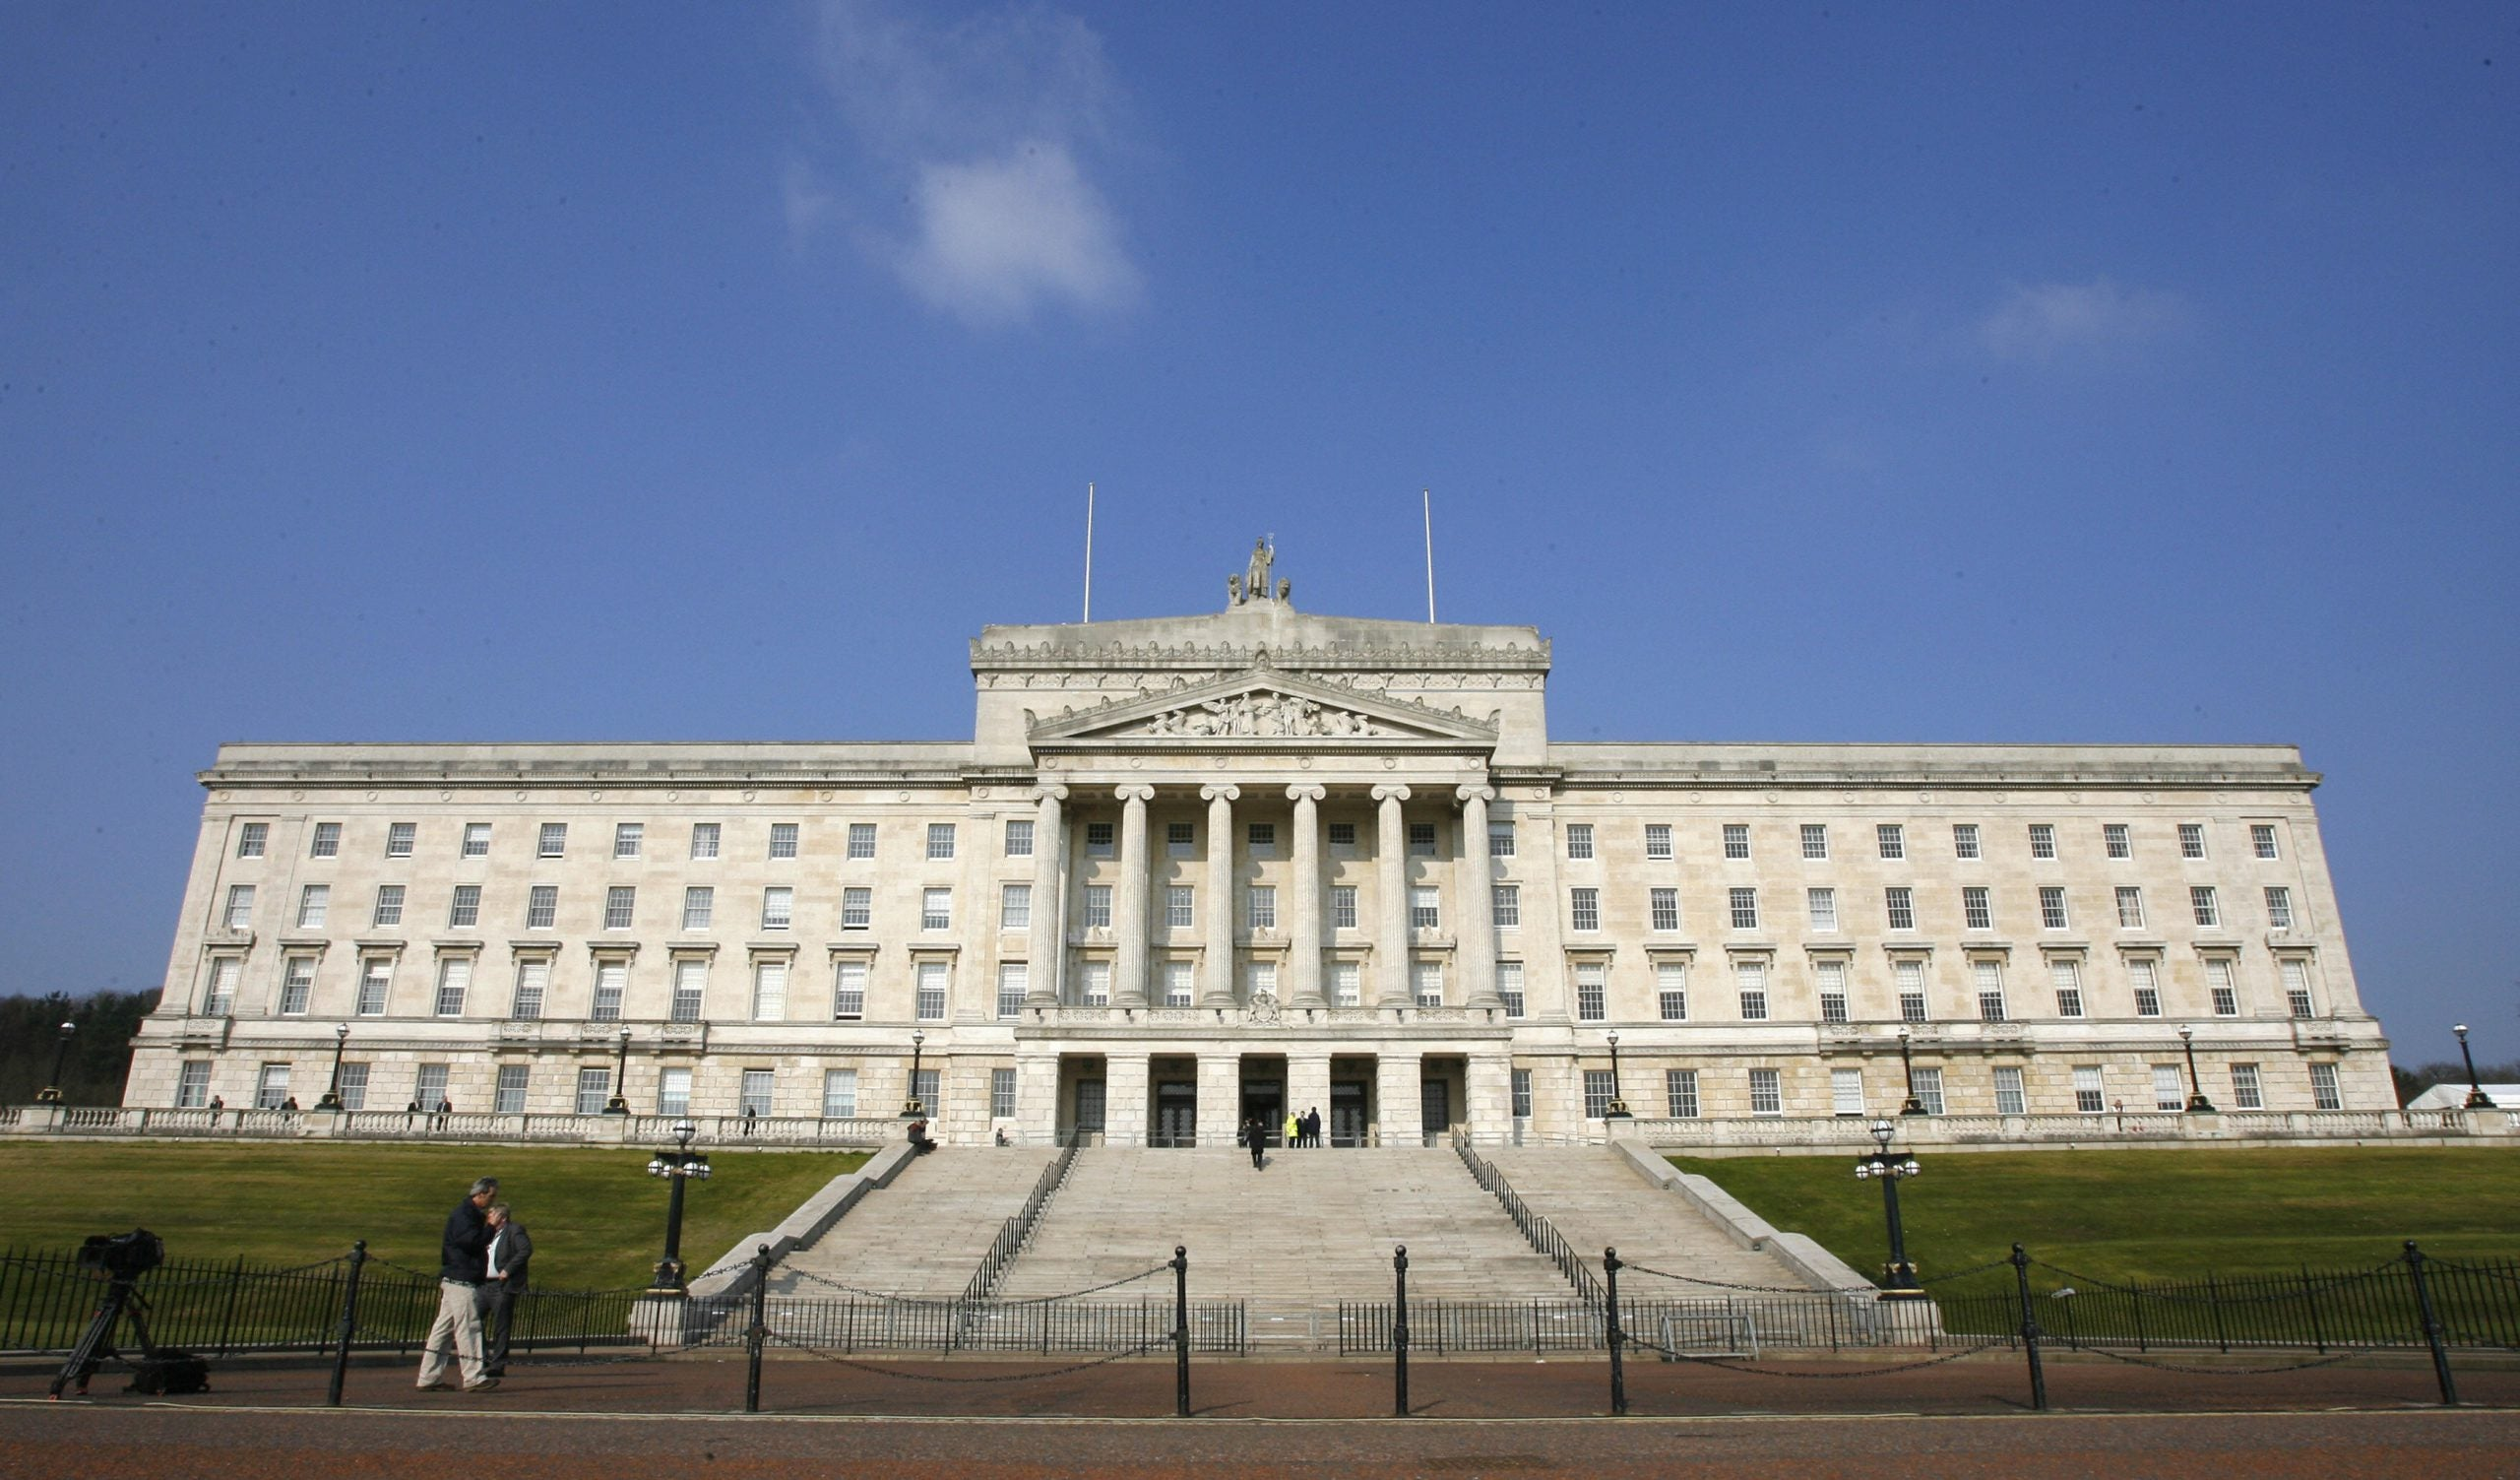 What's going on in Northern Ireland?